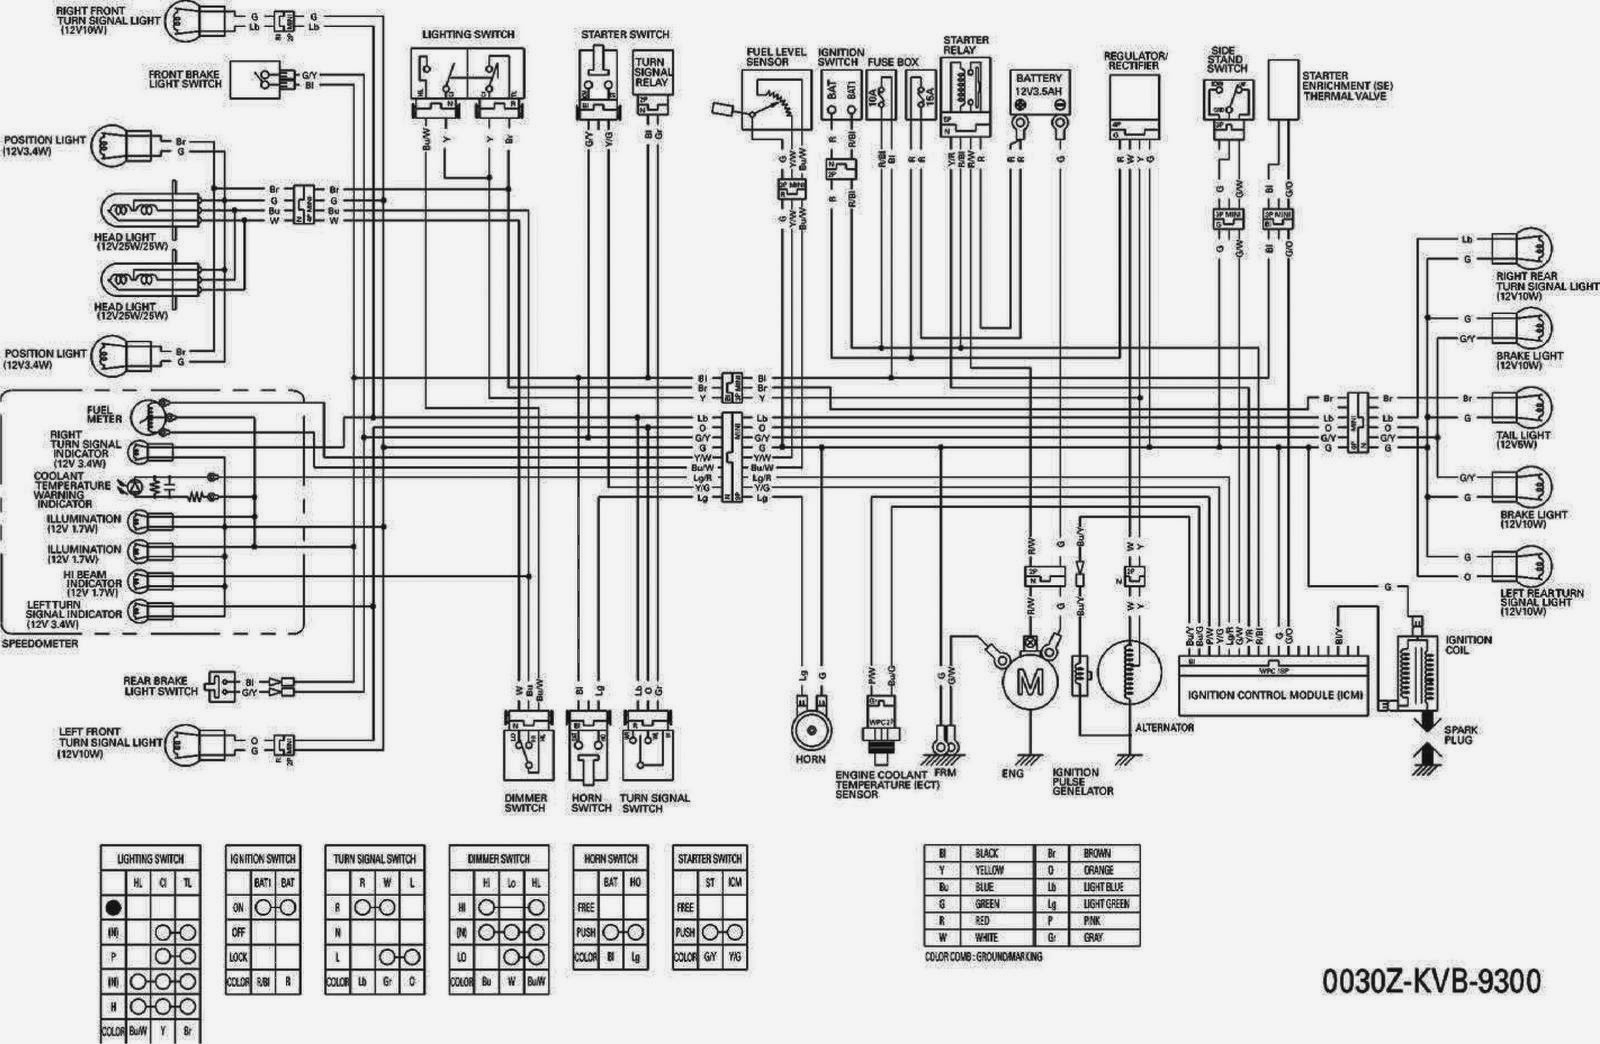 wiring diagram yamaha new vixion   download